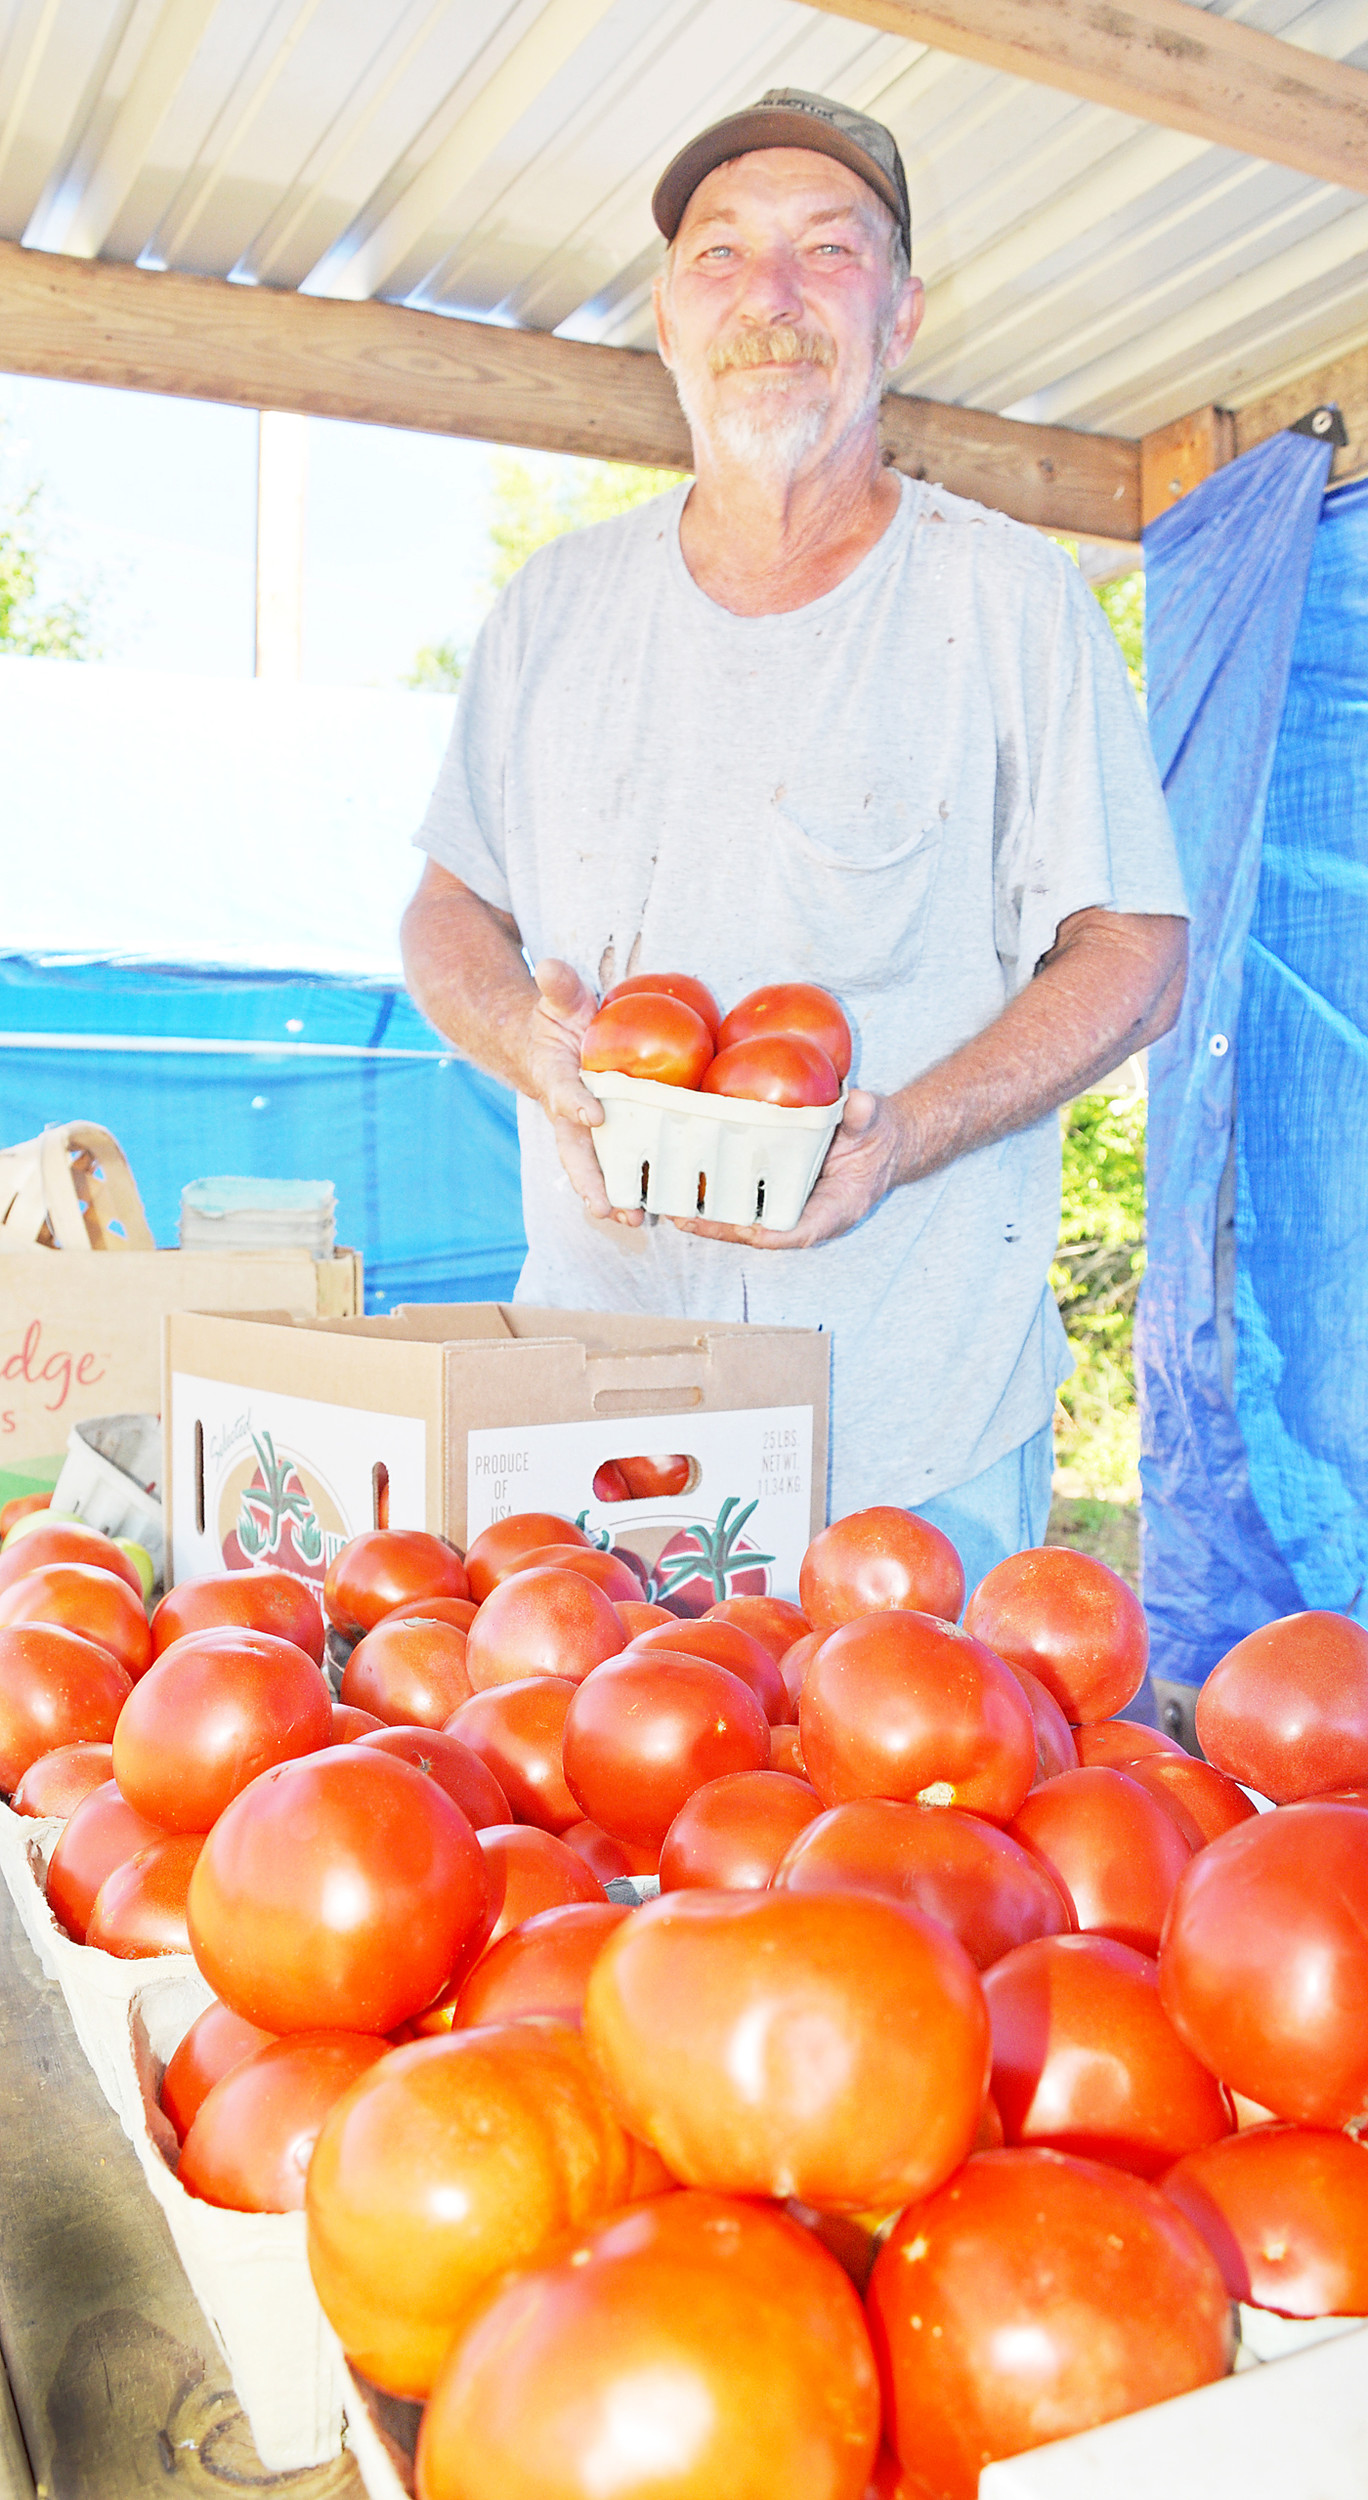 Tomato sales are highest on July 4 weekends, says vendor Johnny Bircheat. Daily Mountain Eagle - Dale Short